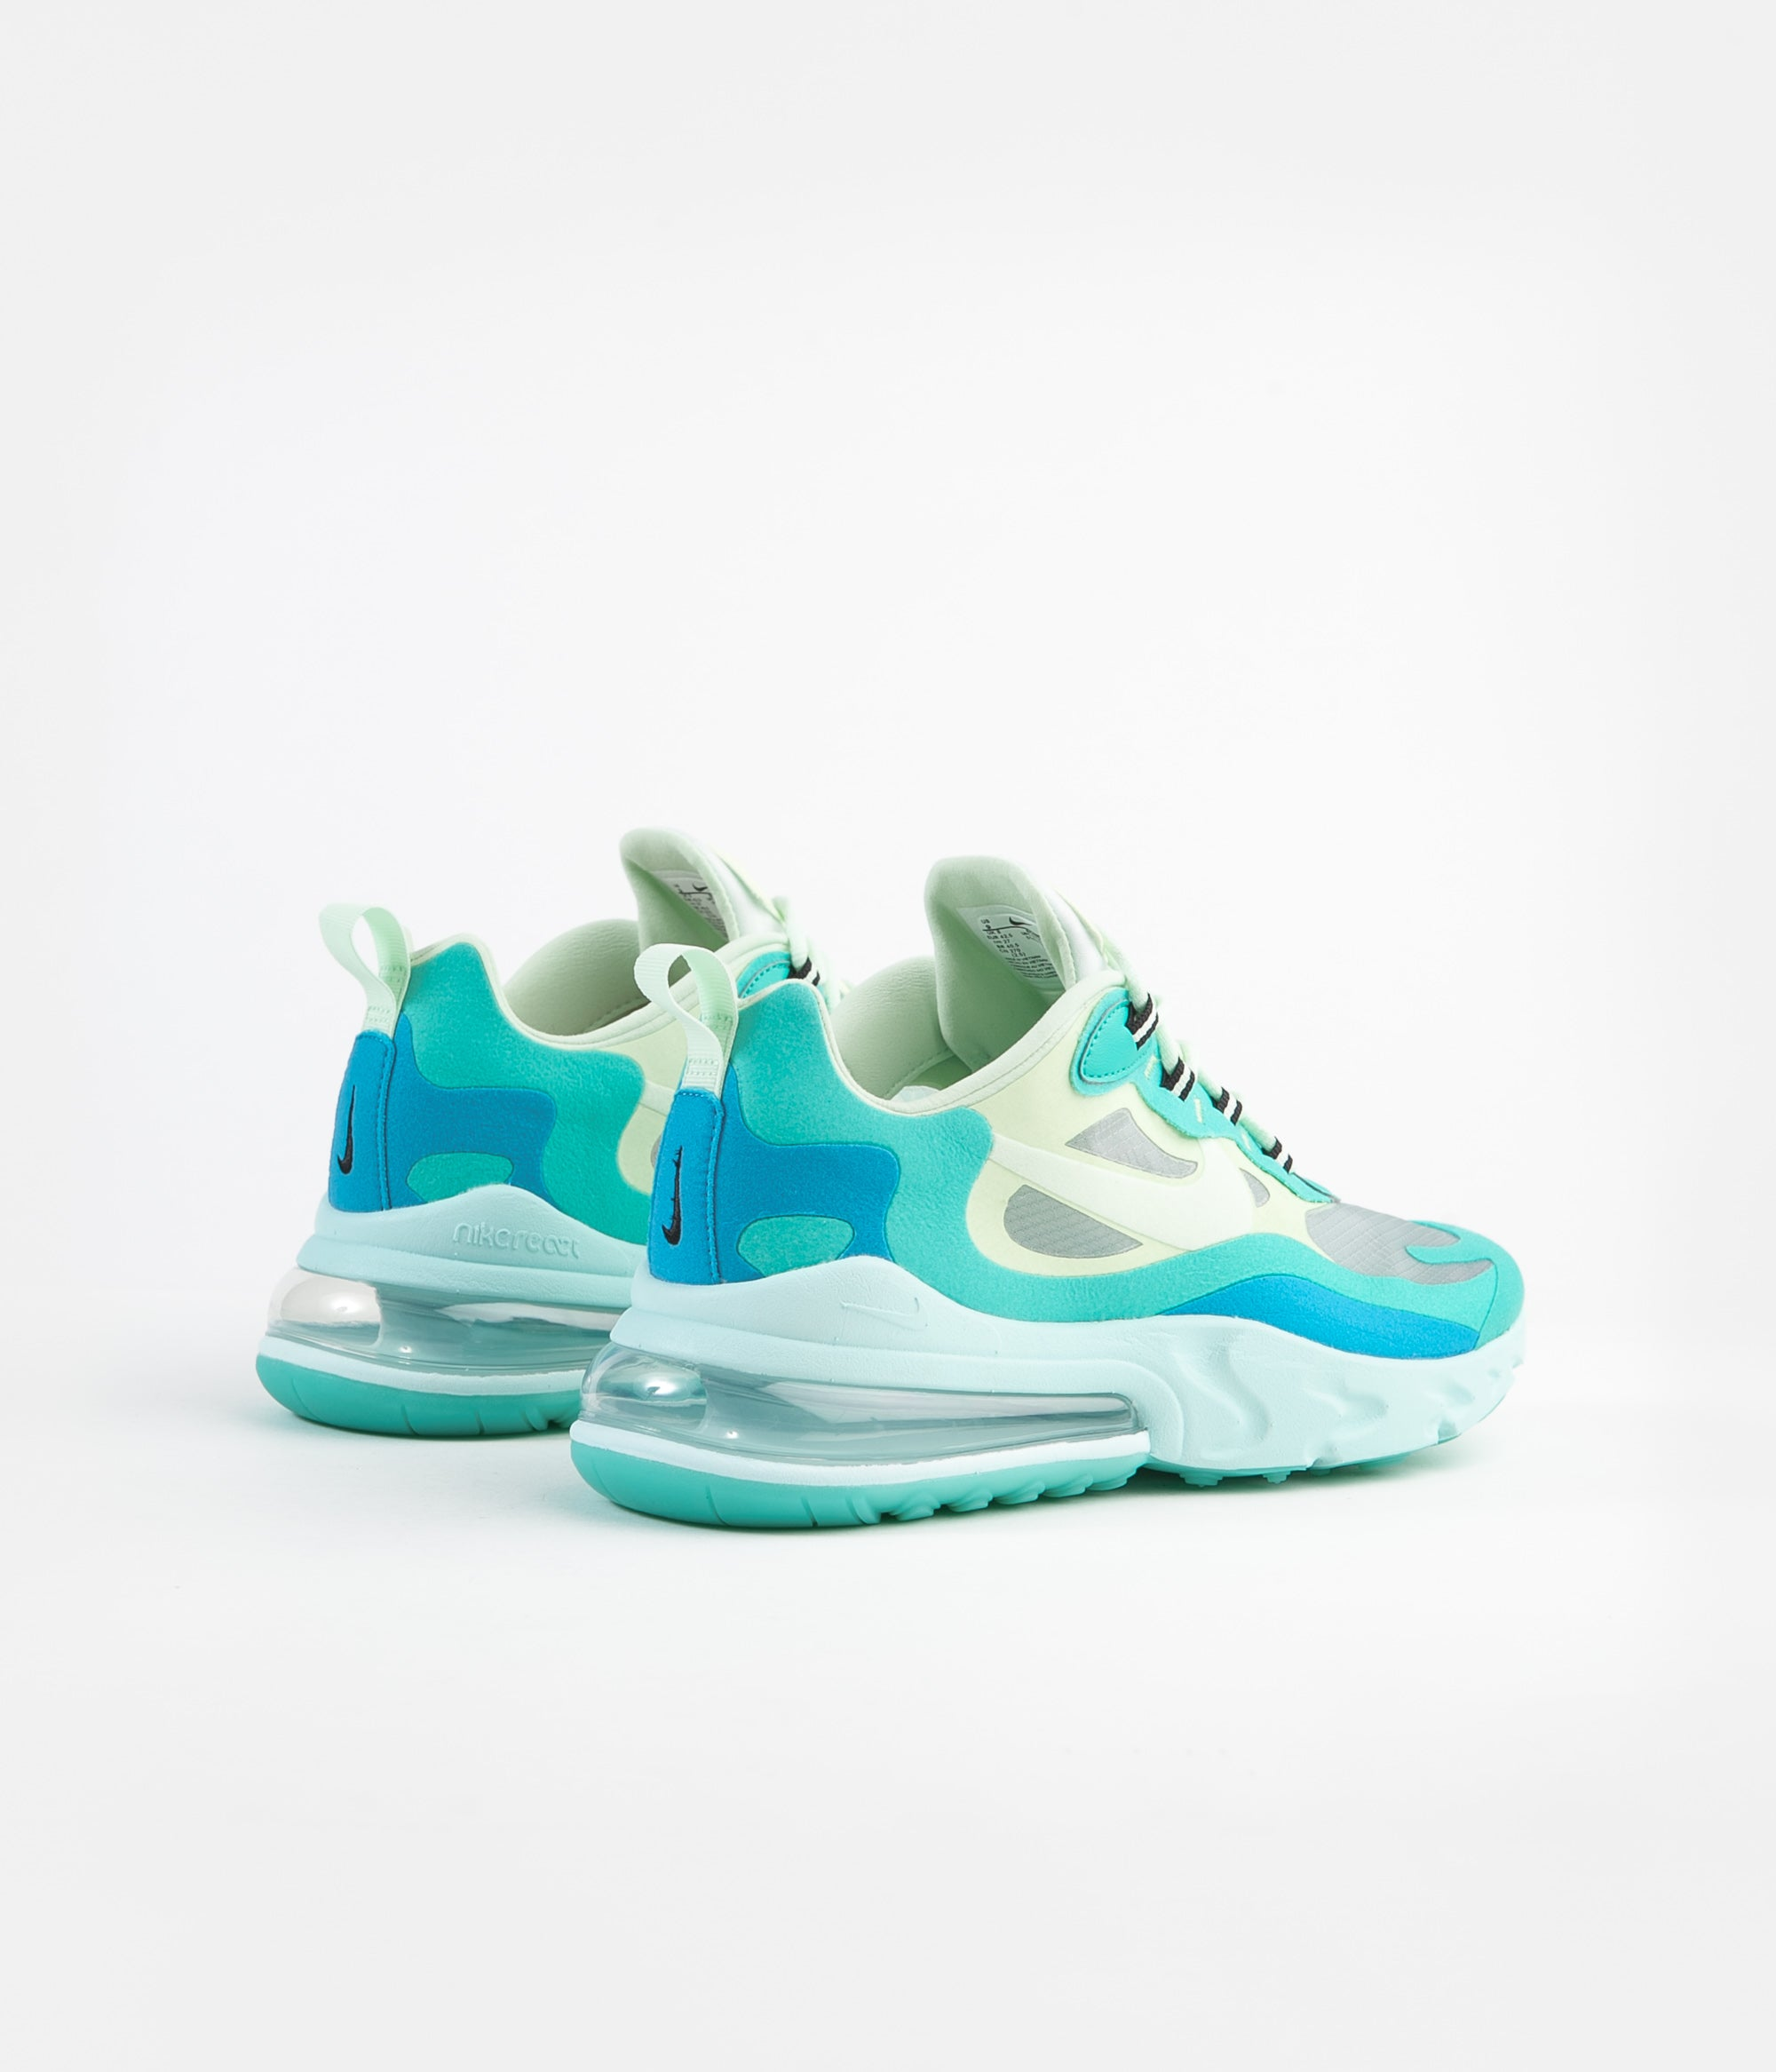 Nike Air Max 270 React Shoes Hyper Jade Frosted Spruce